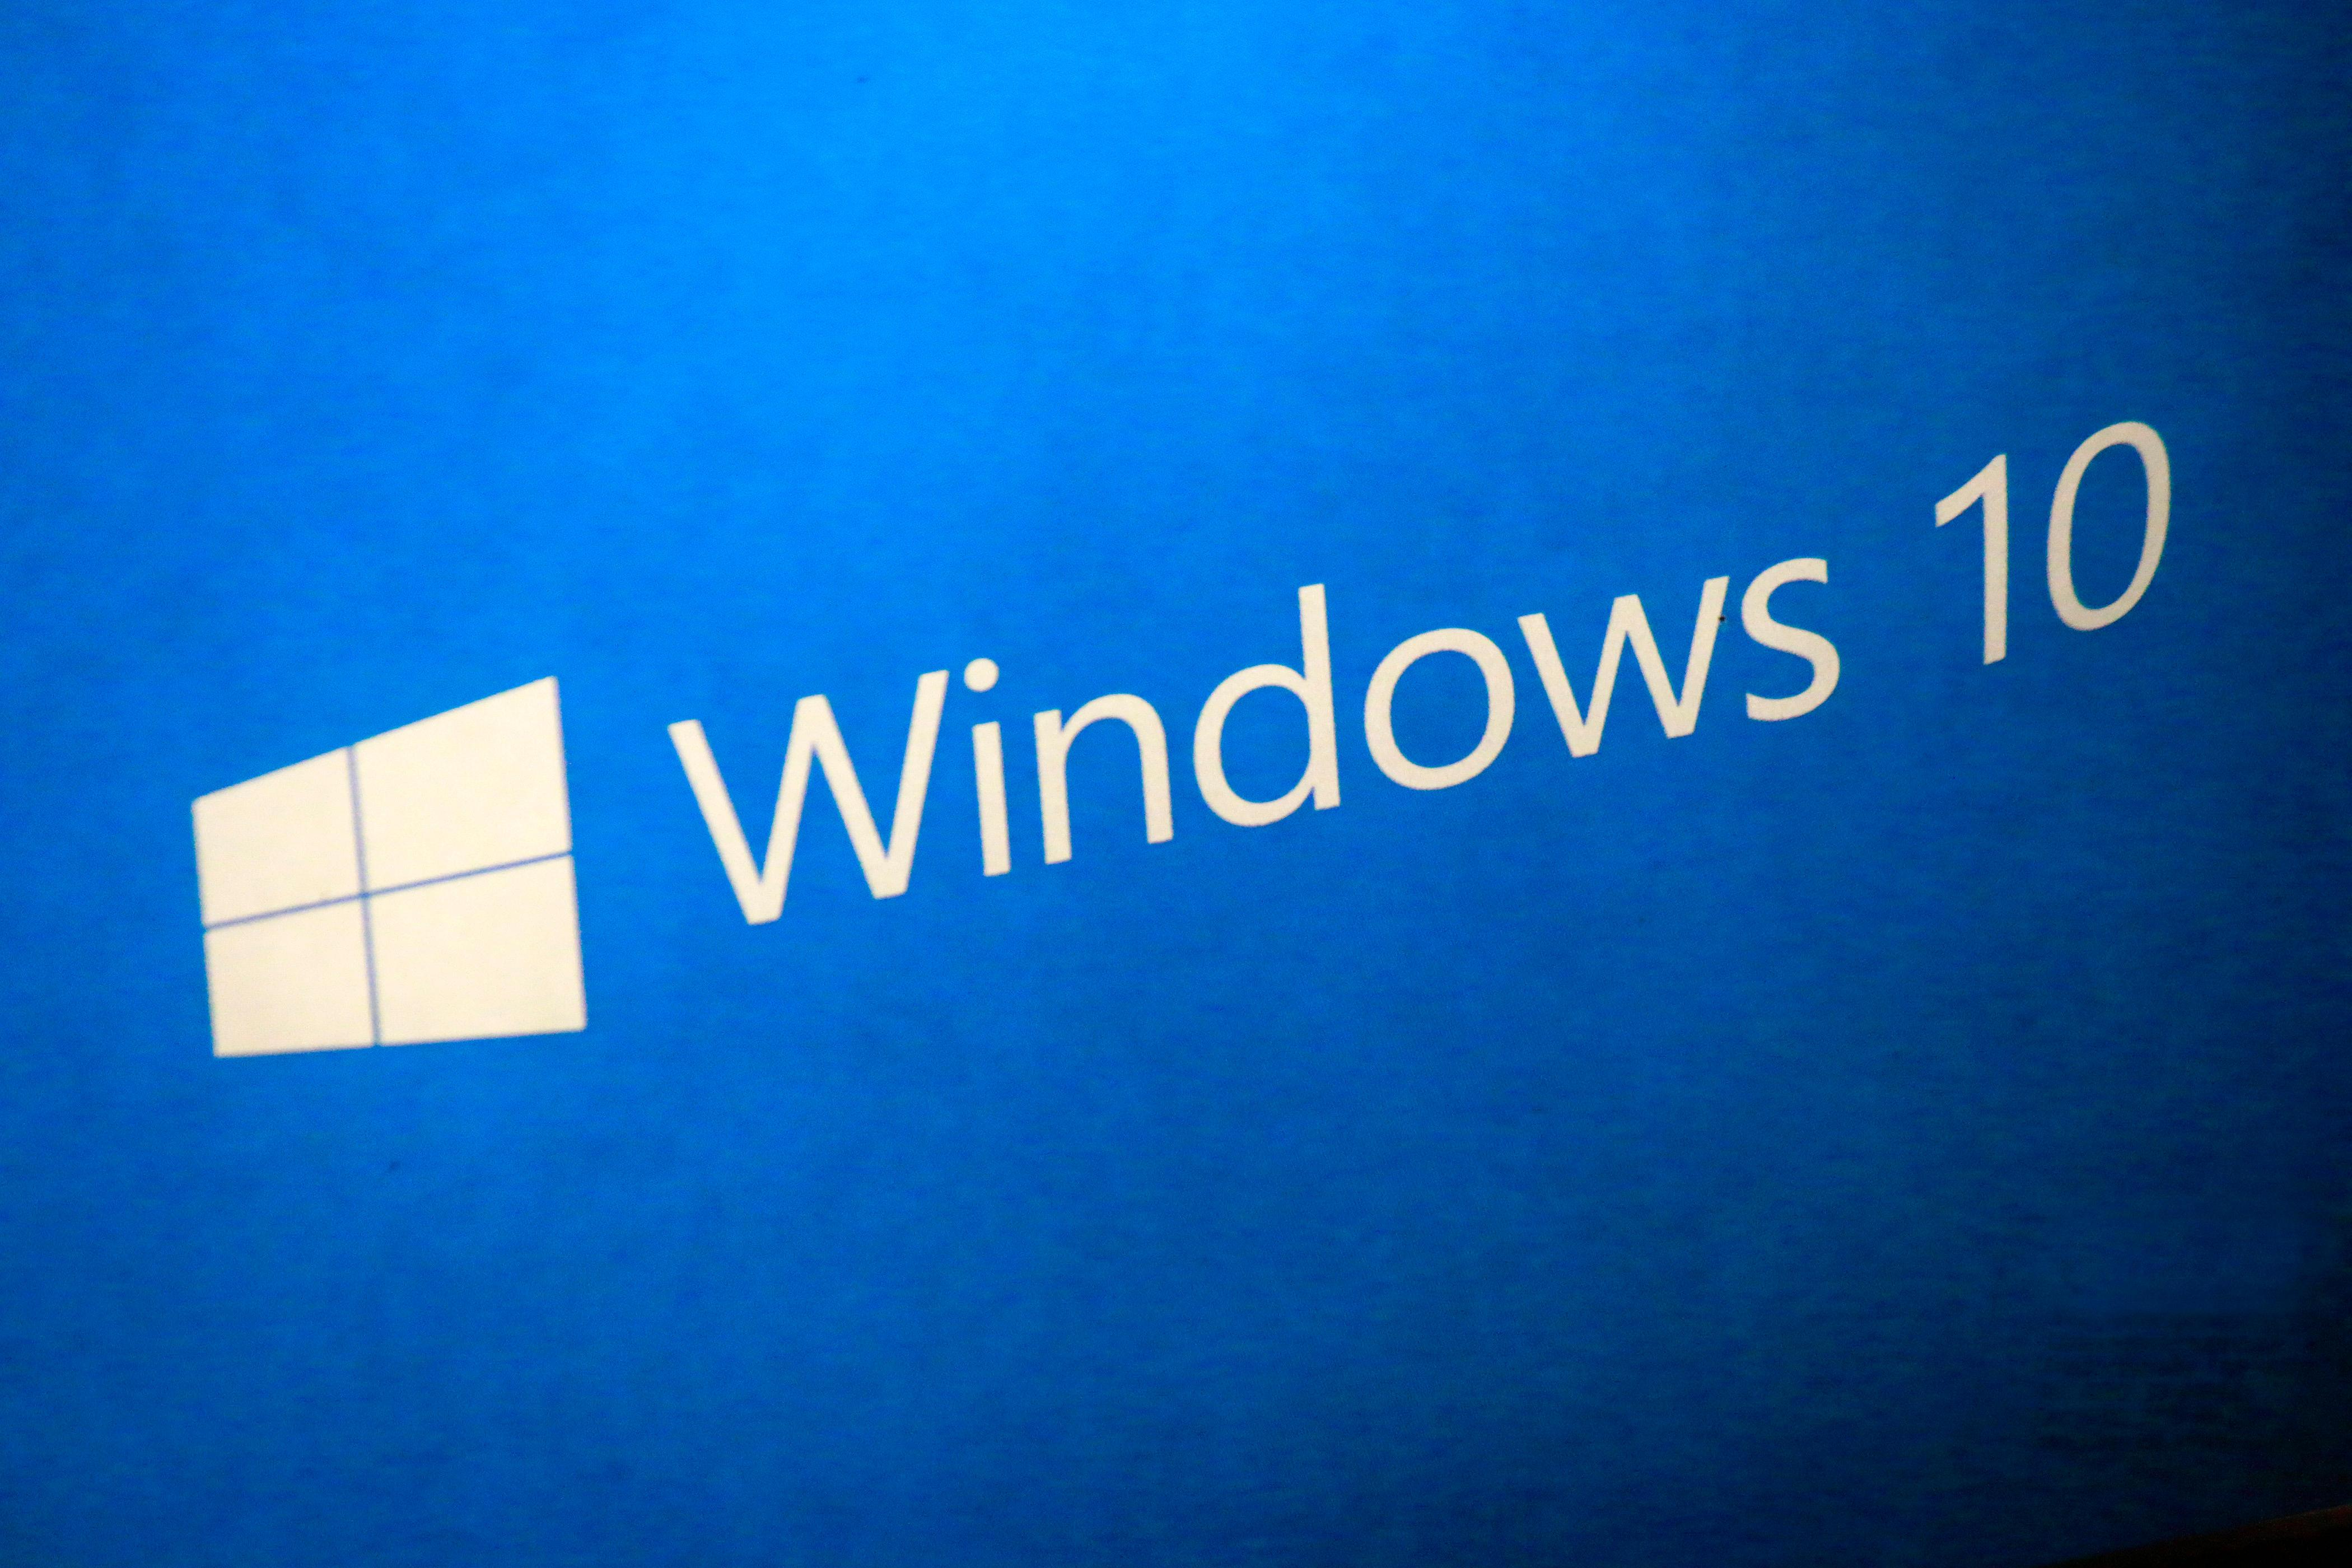 A Windows 10 flaw is concerning users about dodgy apps they've already deleted